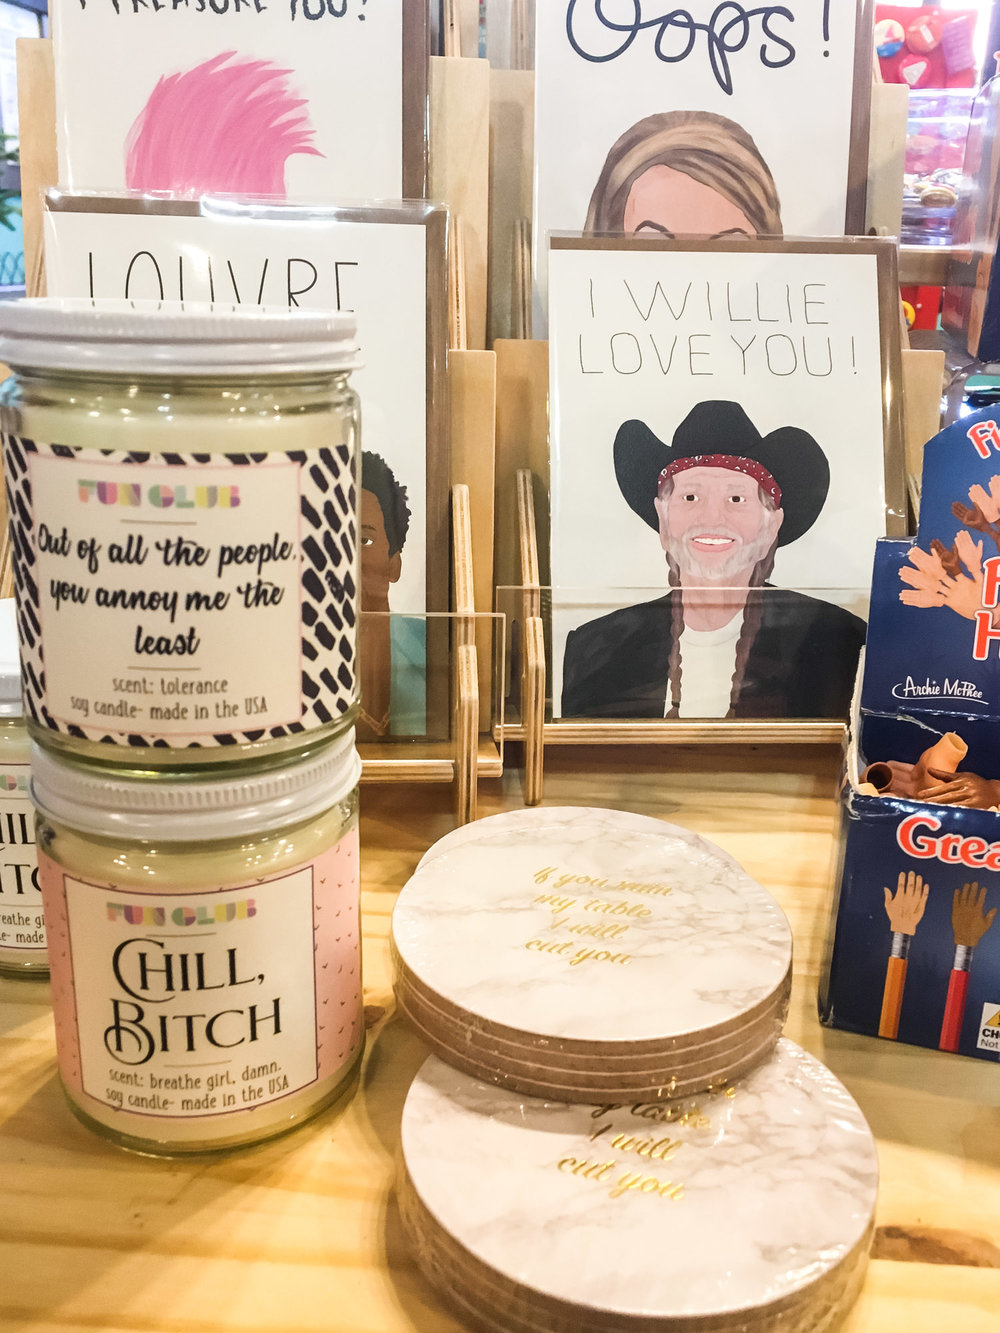 """These  Fun Club  candles are amazing: the jar on """"Chill Bitch"""" says the scent is """"Breathe girl, damn."""""""